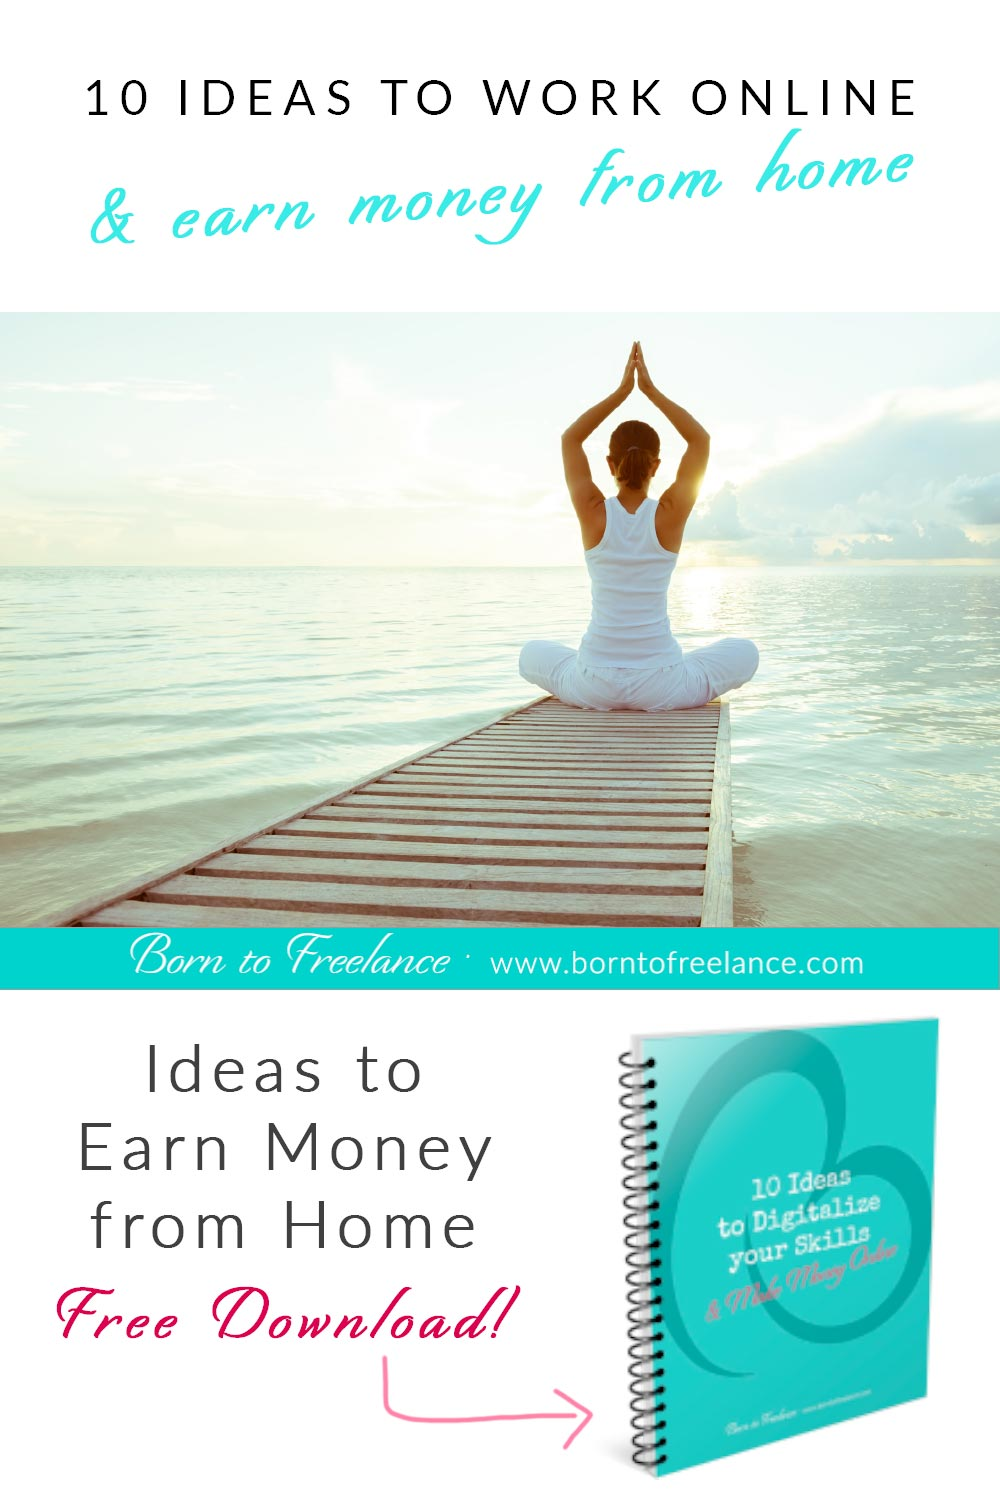 Earn Money from Home - Would you like to work from home? Discover what your online business could look like. #workfromhome #onlinebusiness